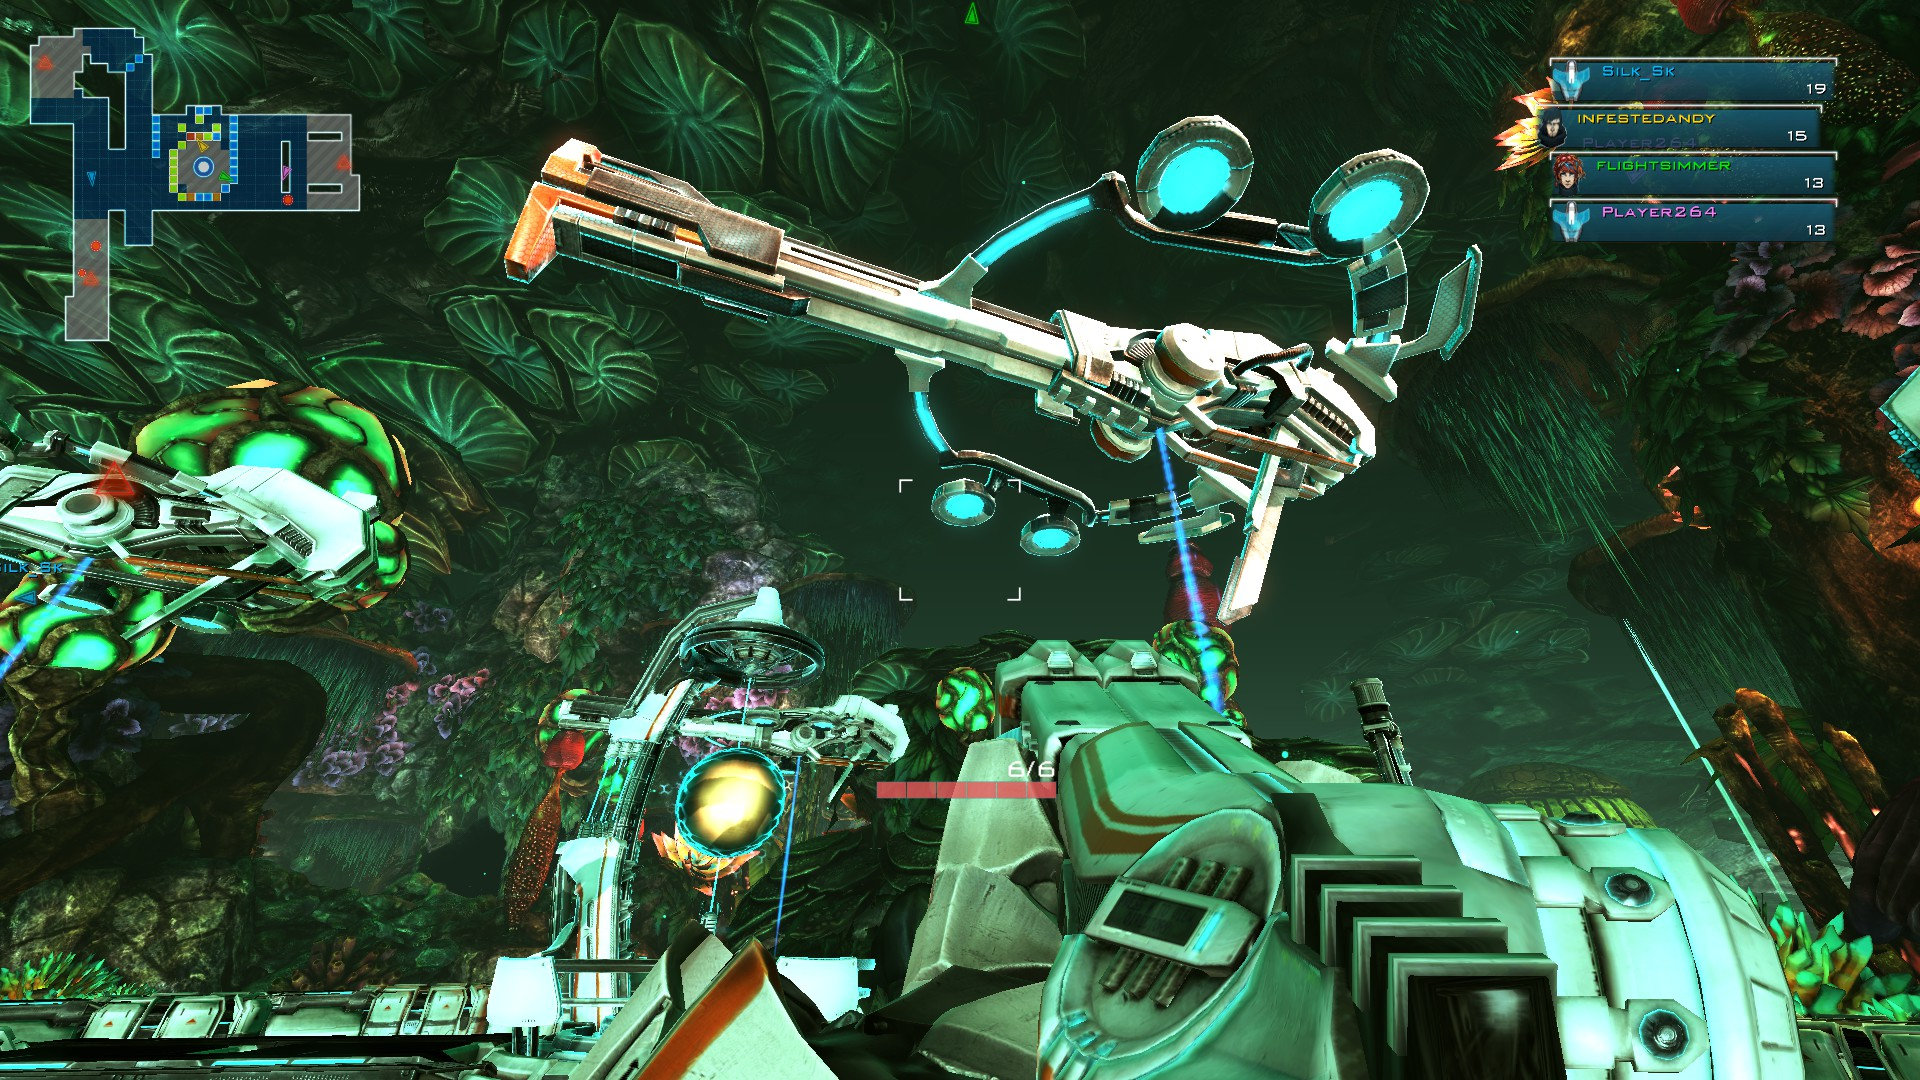 The Violator is an enormous, high-powered rifle tower of doom. It's also massively slow.